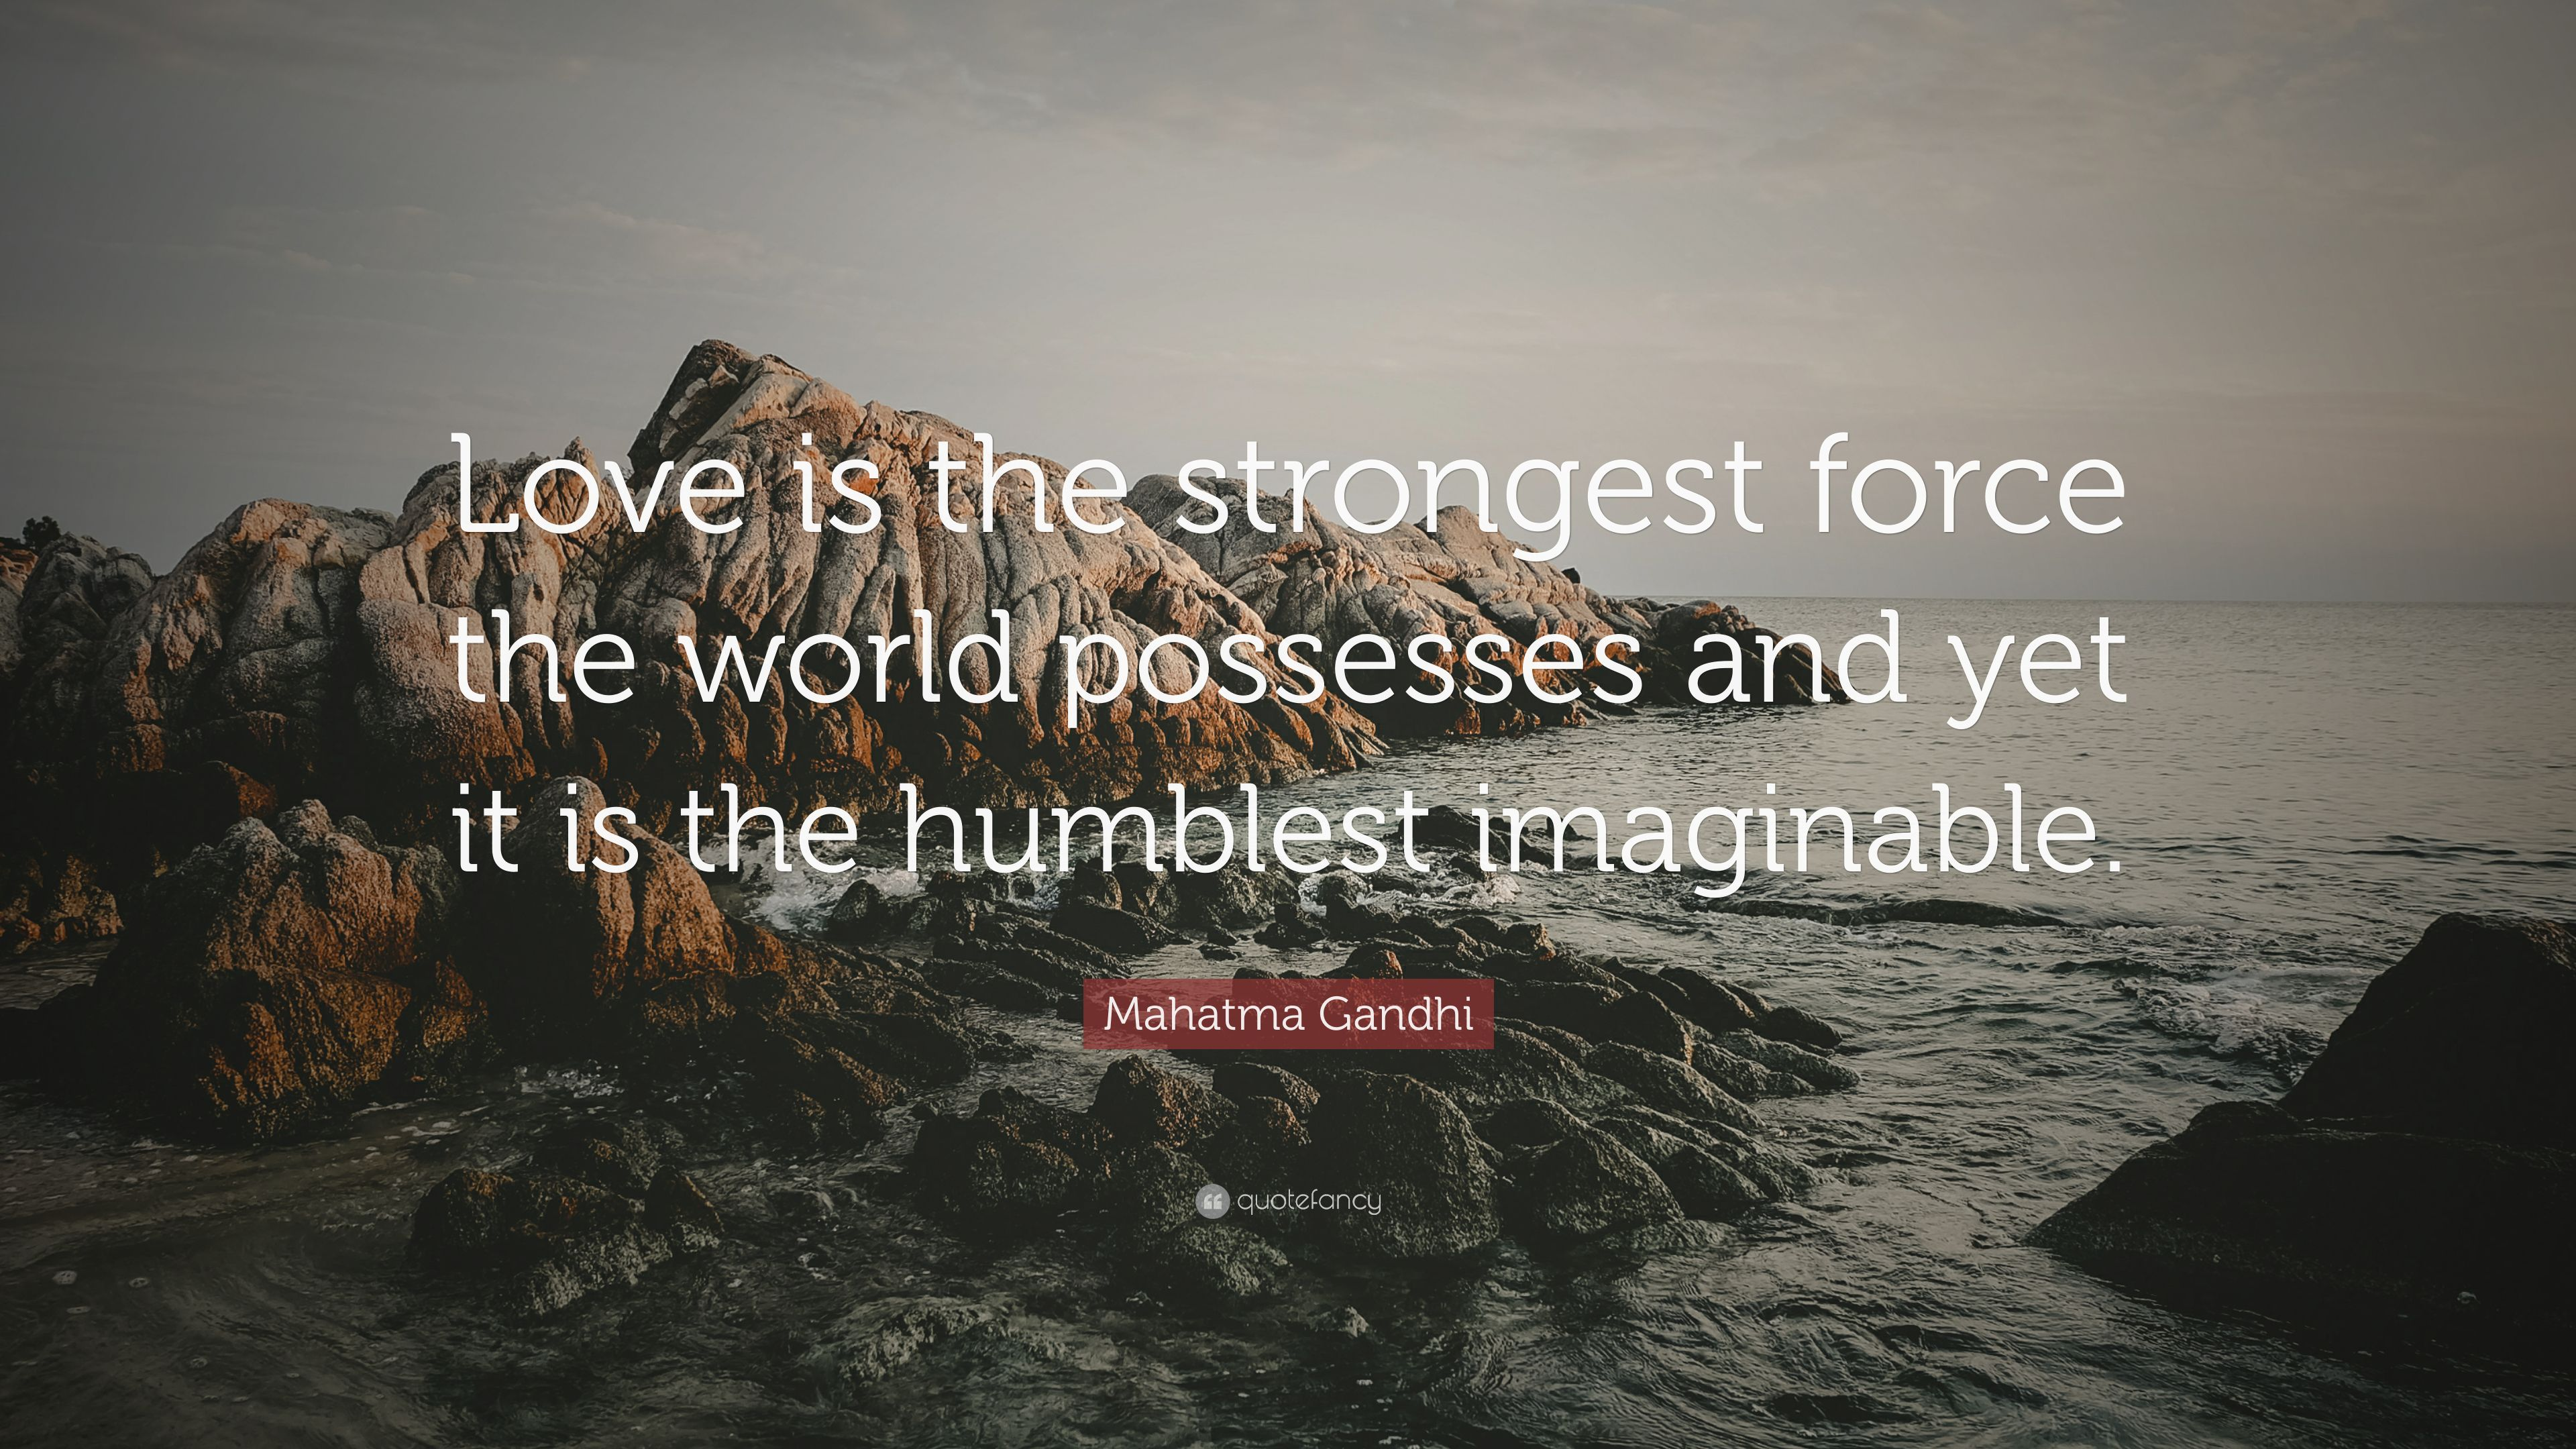 """Mahatma Gandhi Quotes On Love Mahatma Gandhi Quote """"Love Is The Strongest Force The World"""